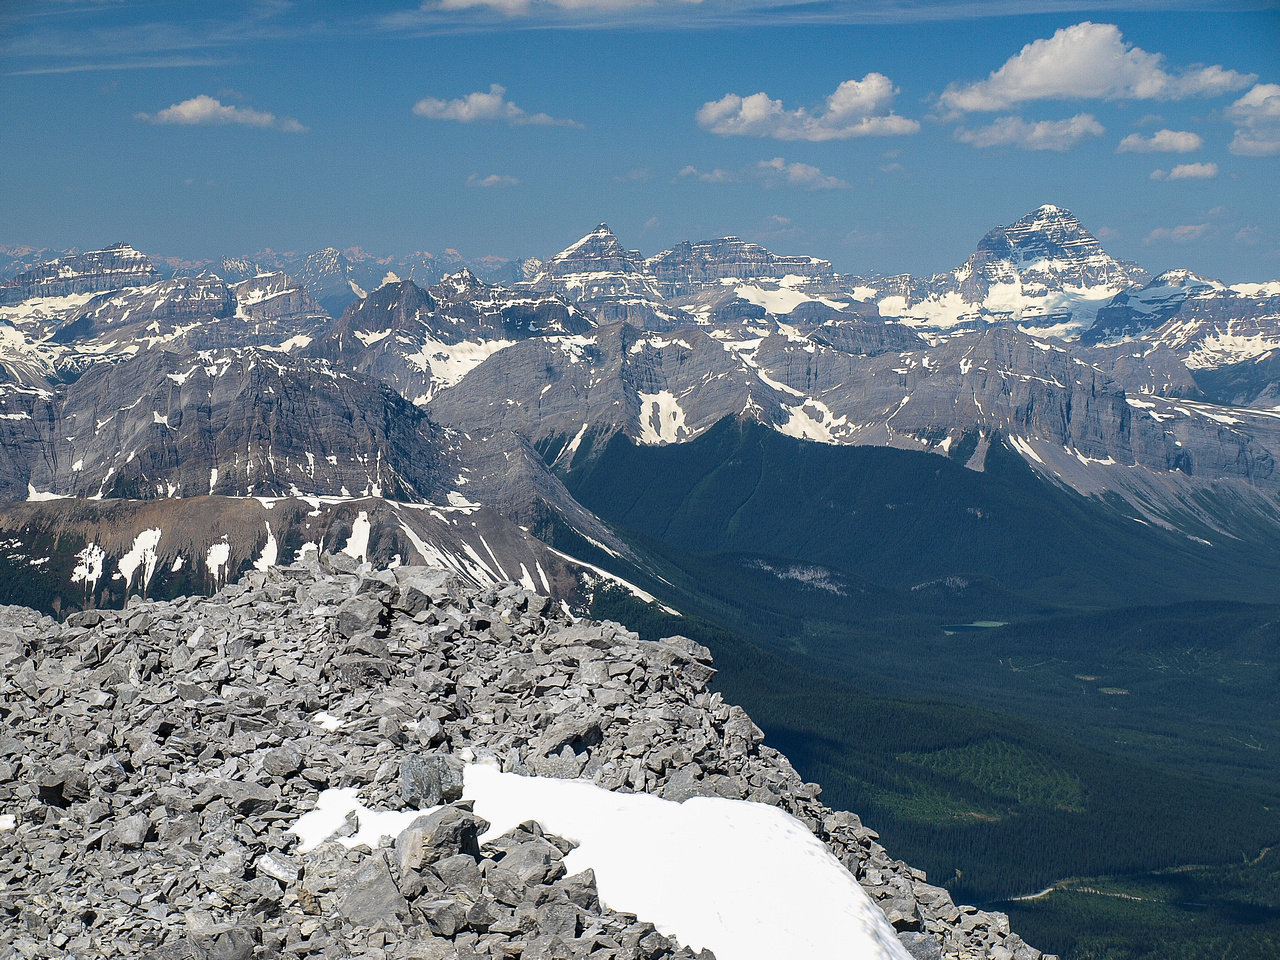 Slightly wider view towards Mounts Eon, Aye and Assiniboine (L to R).